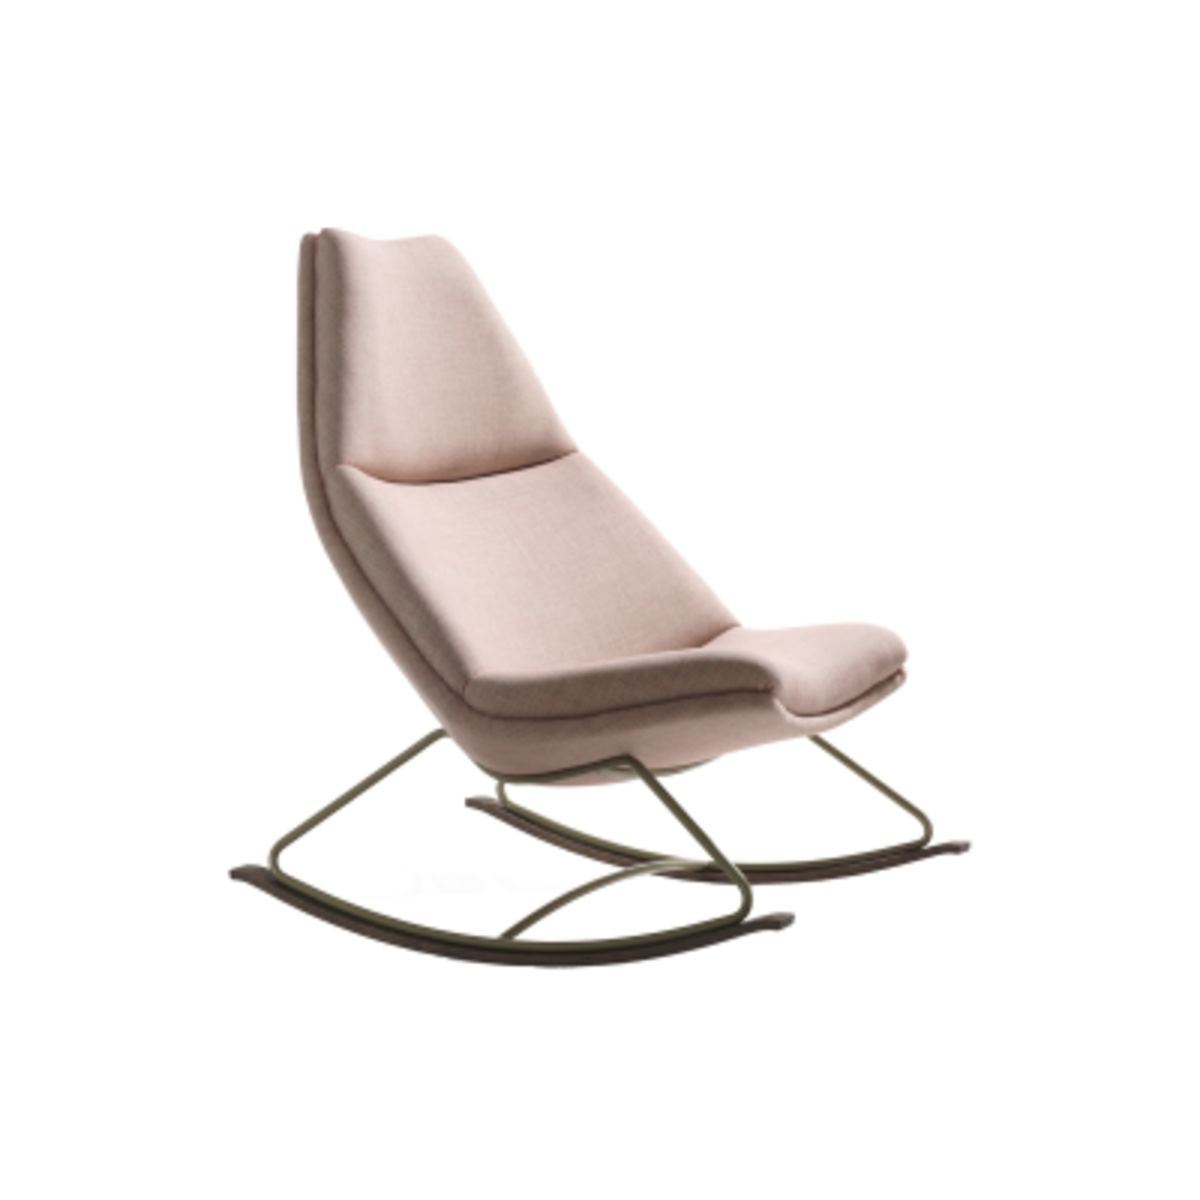 Artifort Design Fauteuil Geoffrey Harcourt.Rocking Chair With Fixed Upholstery Powder Coat Oil Main Line Flax